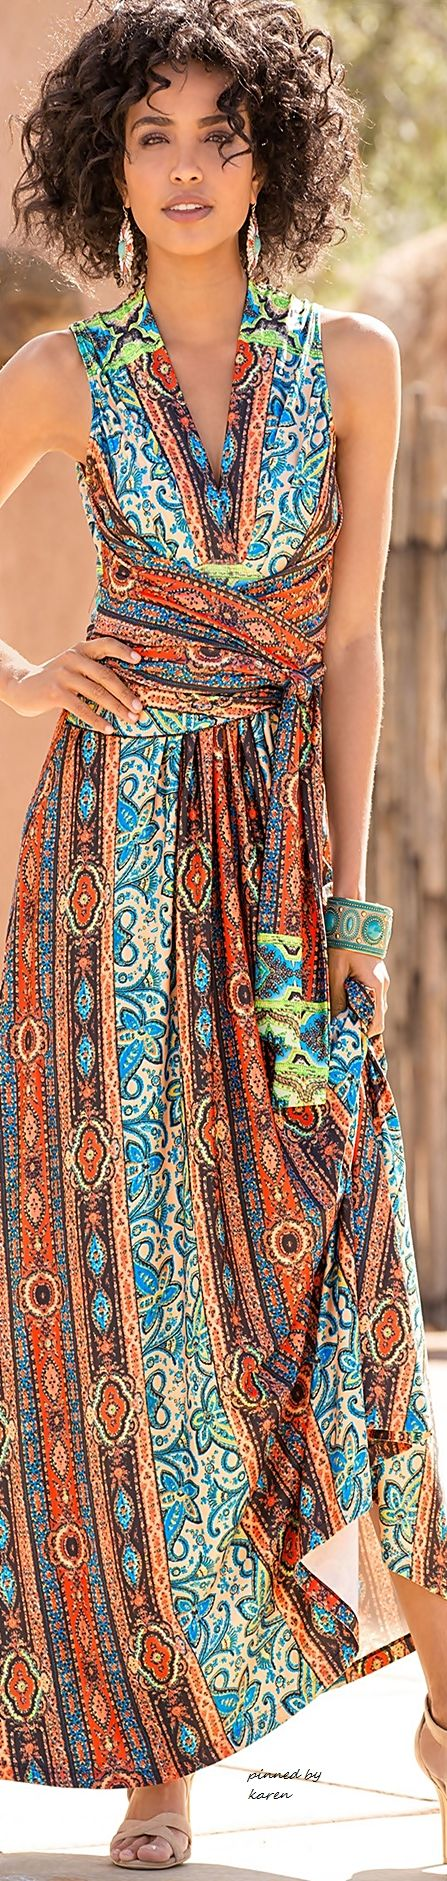 Diamond Cowgirl ~ Southwestern Style                                                                                                                                                                                 More